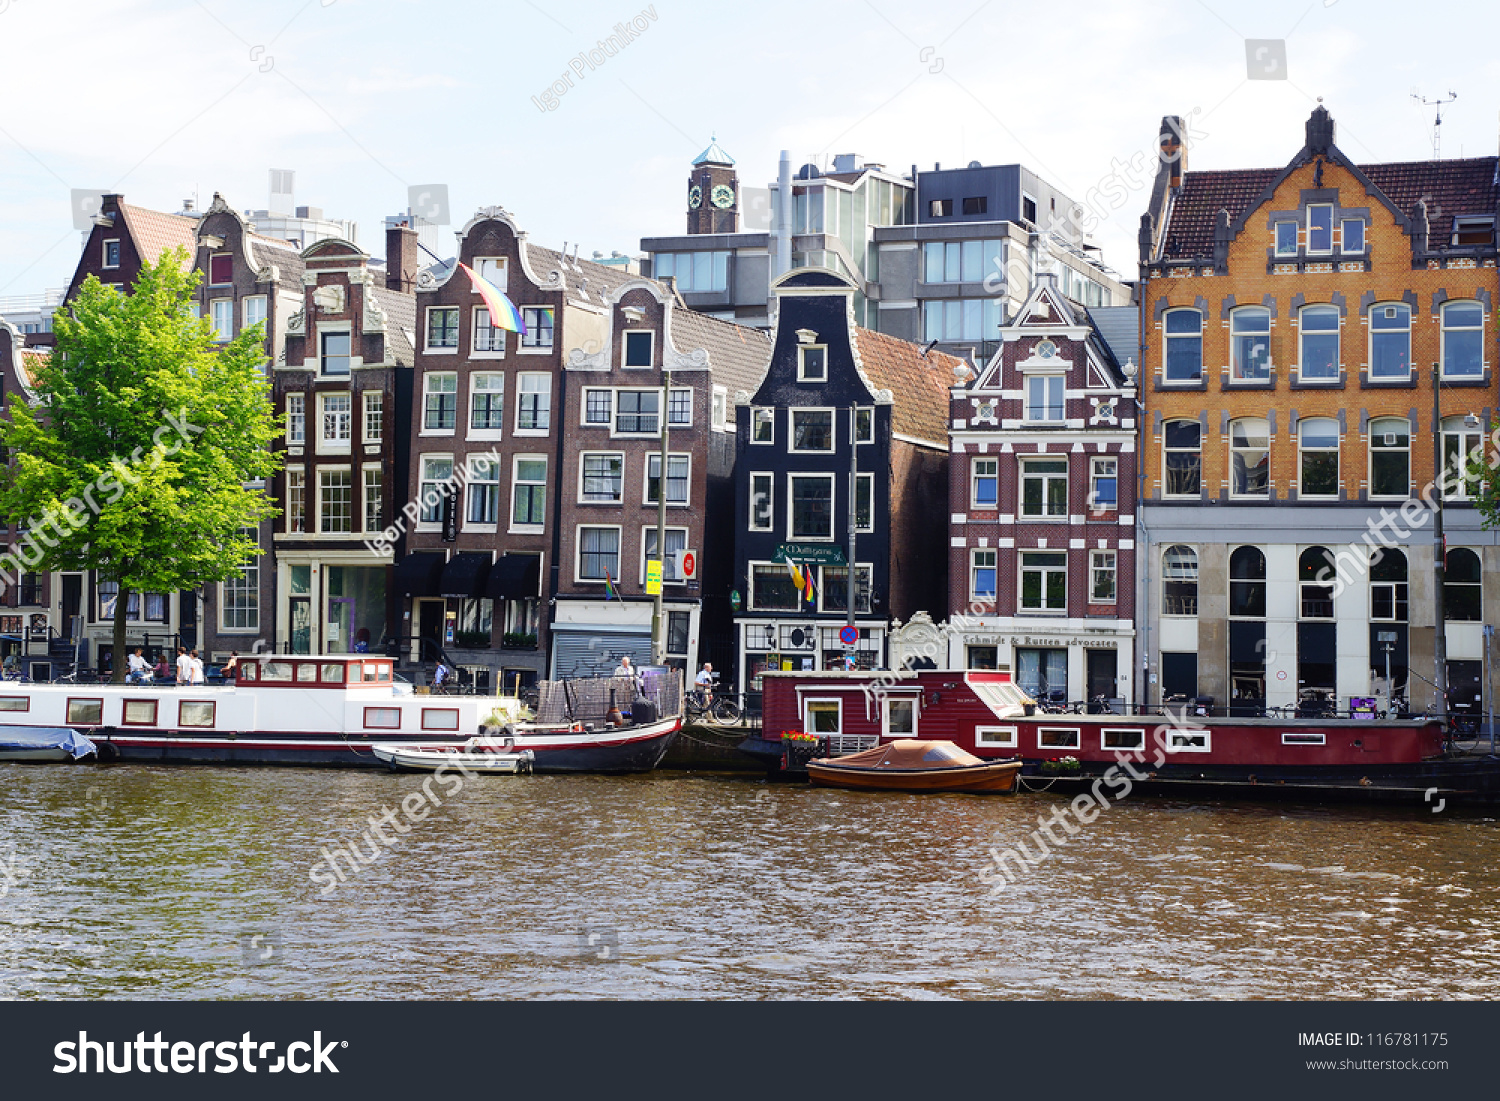 Rent A Boat Amsterdam Amsterdam Holland August 01 Dutch Scenery With Its